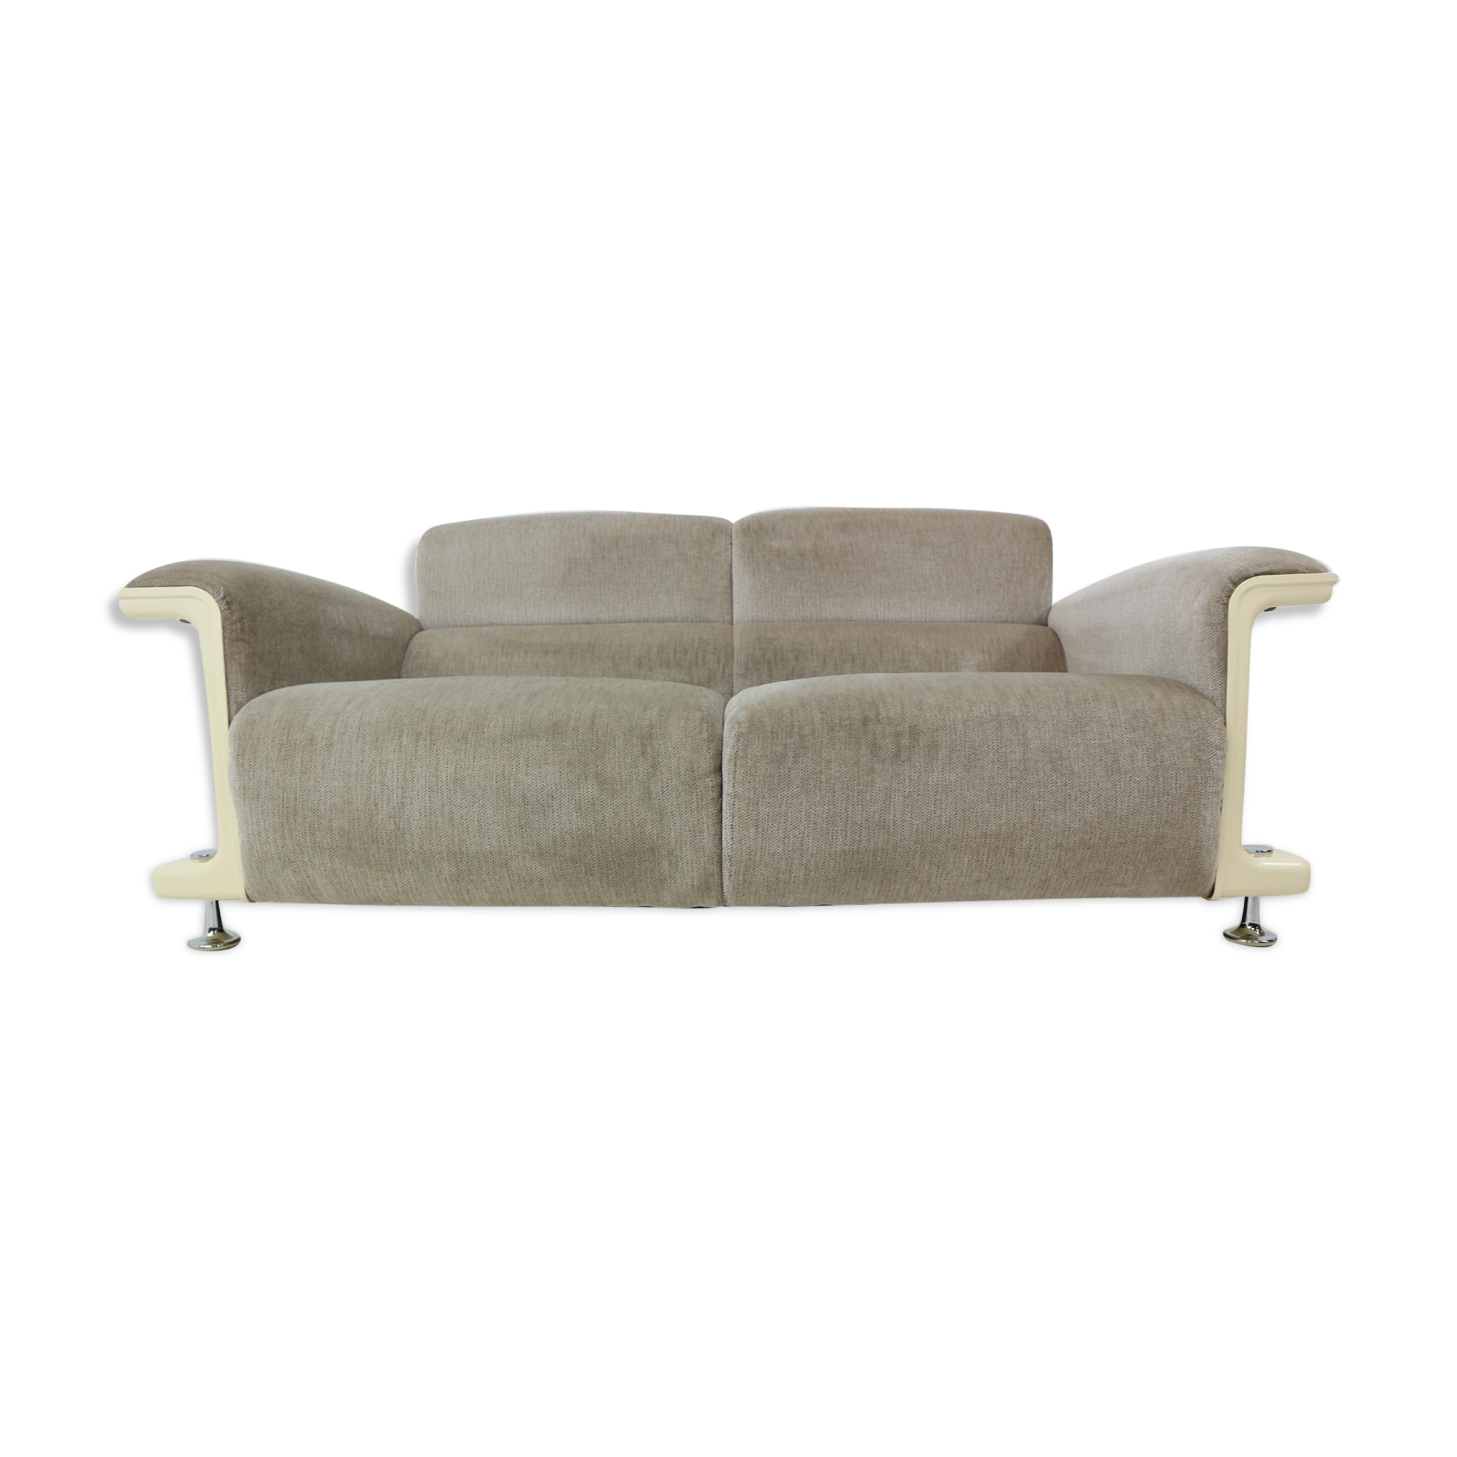 Two-seater sofa BZ28 by Gerd Lange for